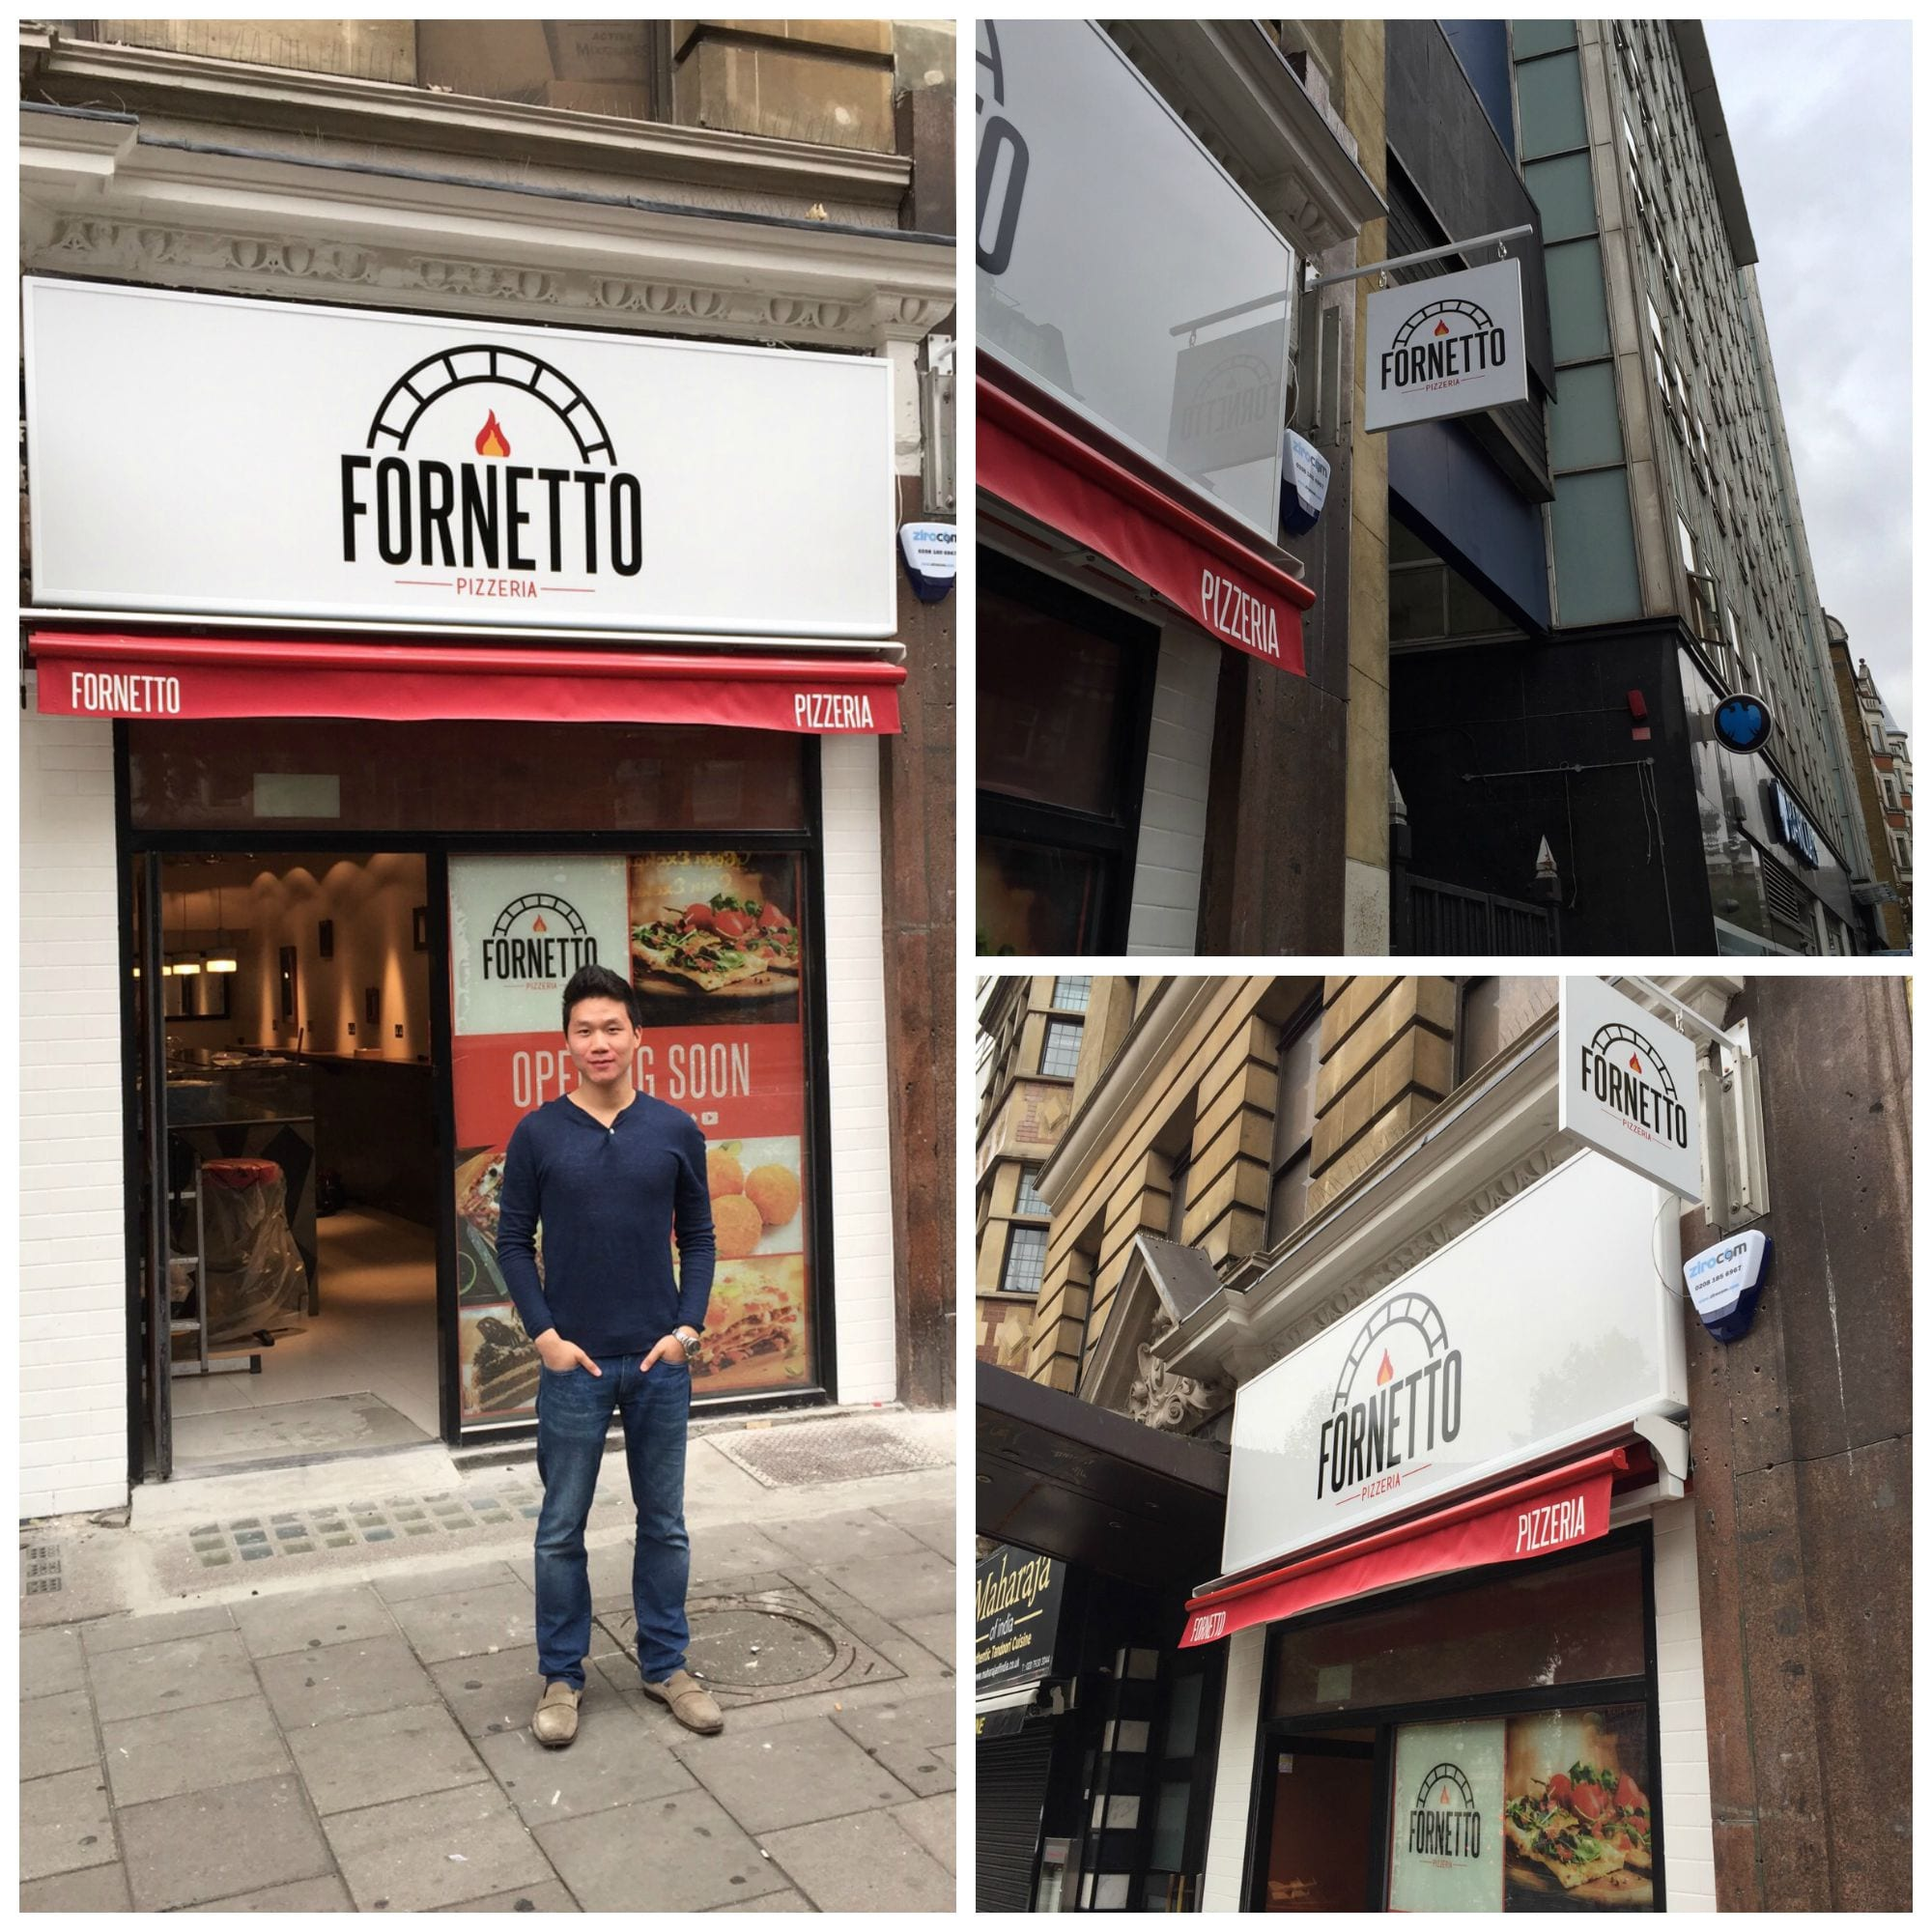 Fornetto restaurant Charing Cross Road Central South West illuminated LED fascia sign hanging projecting dibond sign